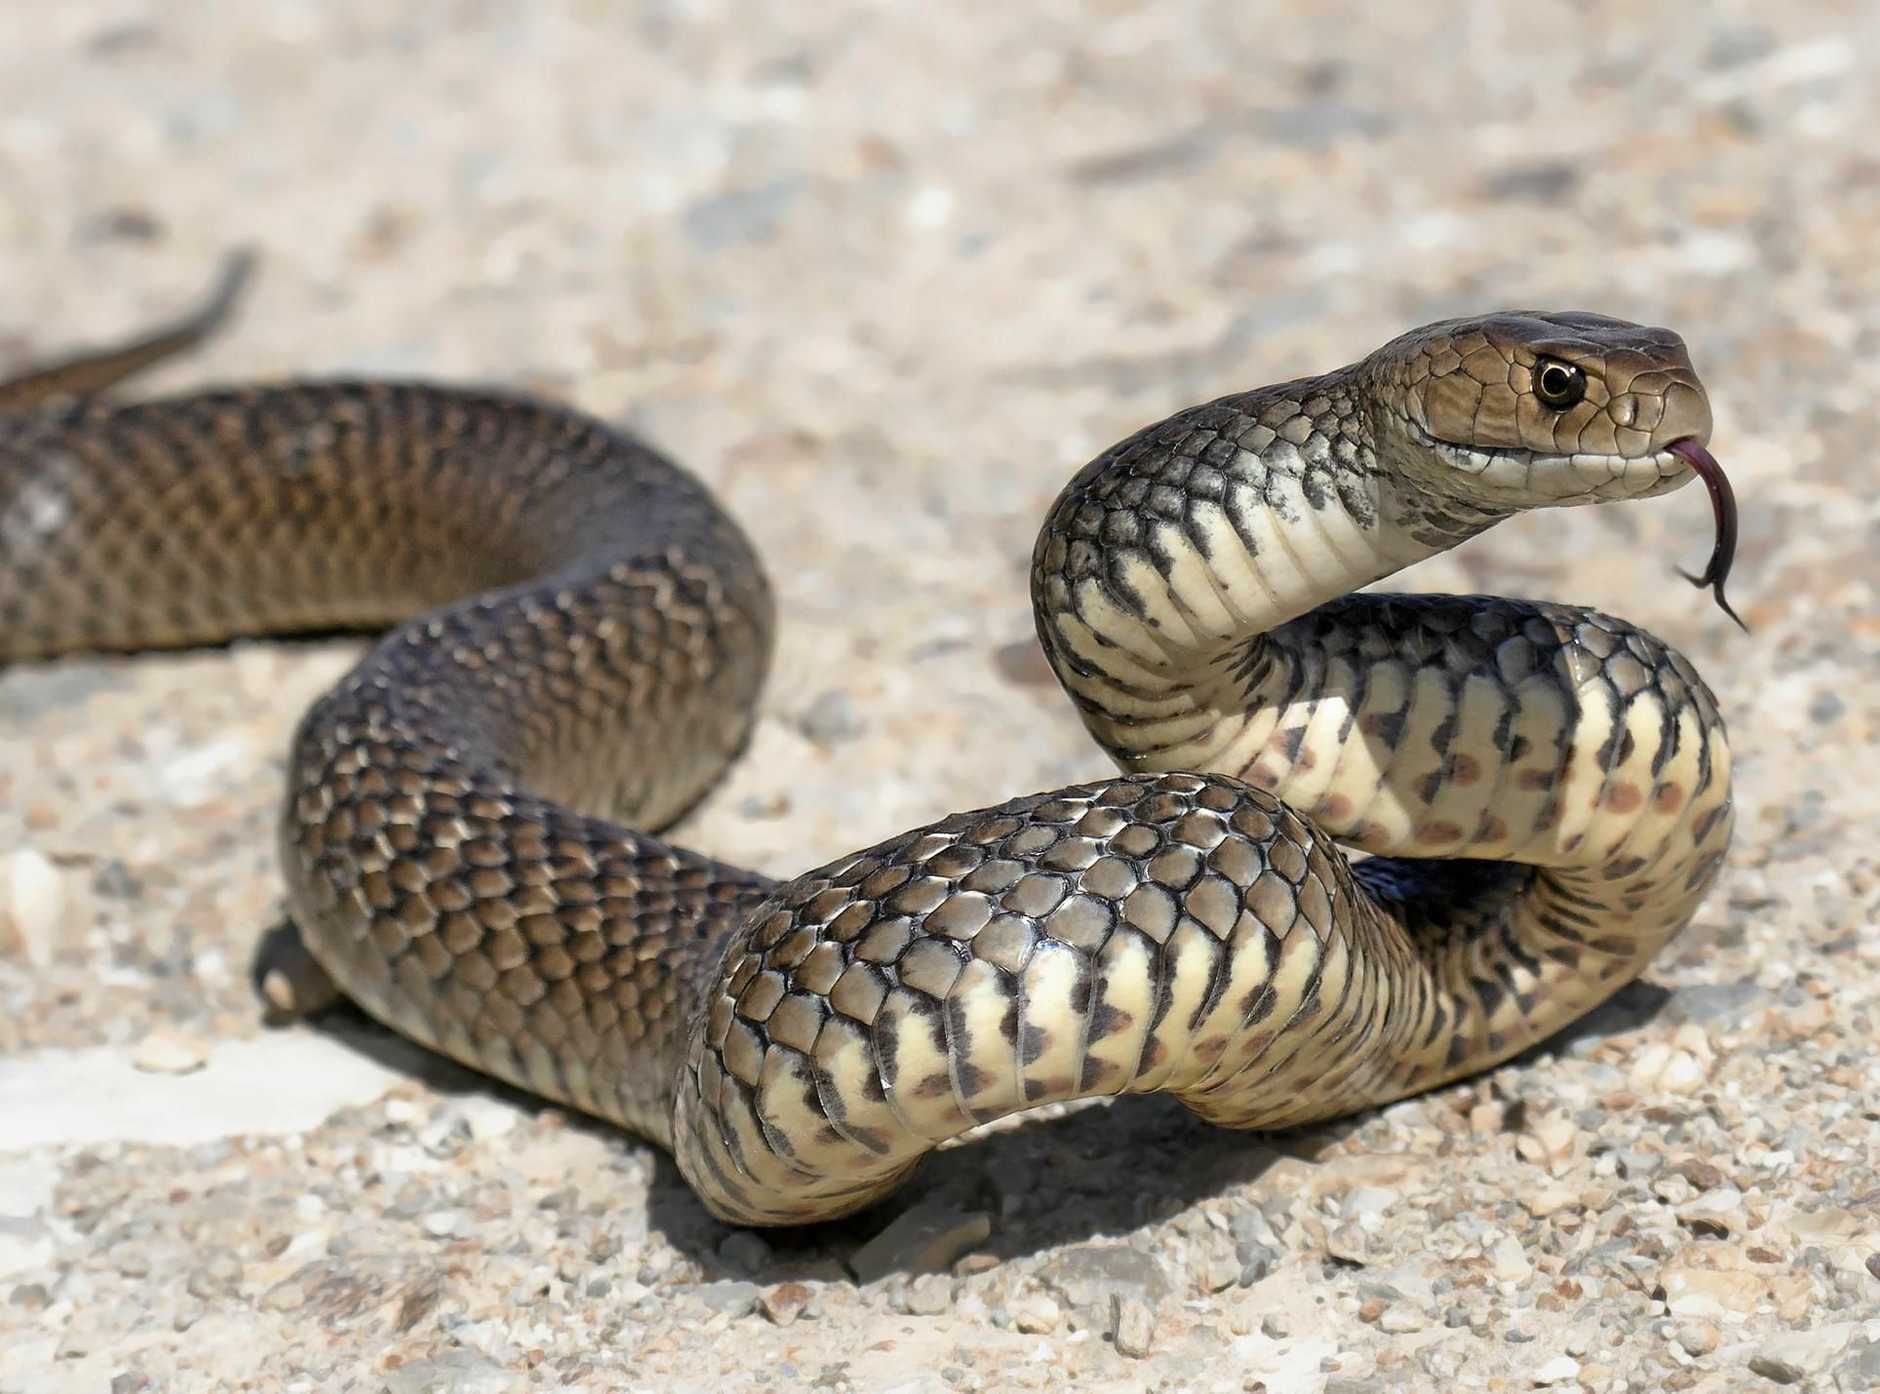 Eastern brown snakes are especially active at the moment and can deliver a lethal bite.